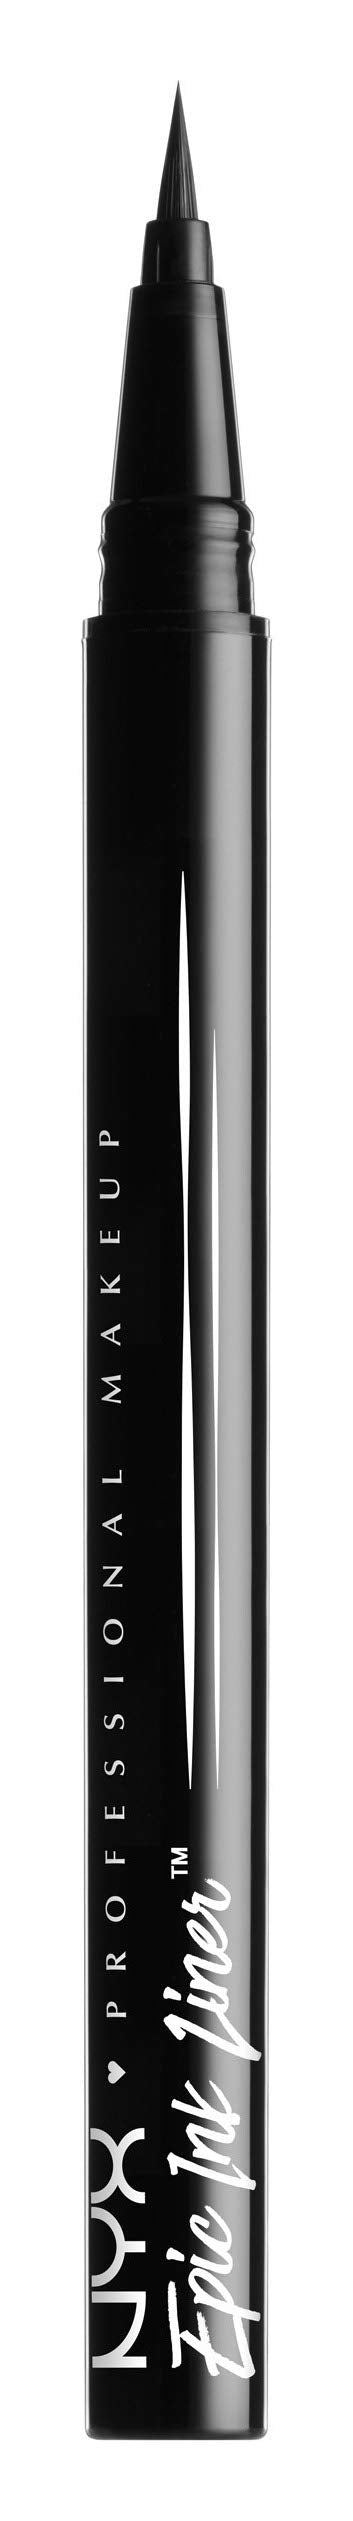 NYX PROFESSIONAL MAKEUP Epic Ink Liner - Coco Mink Lashes